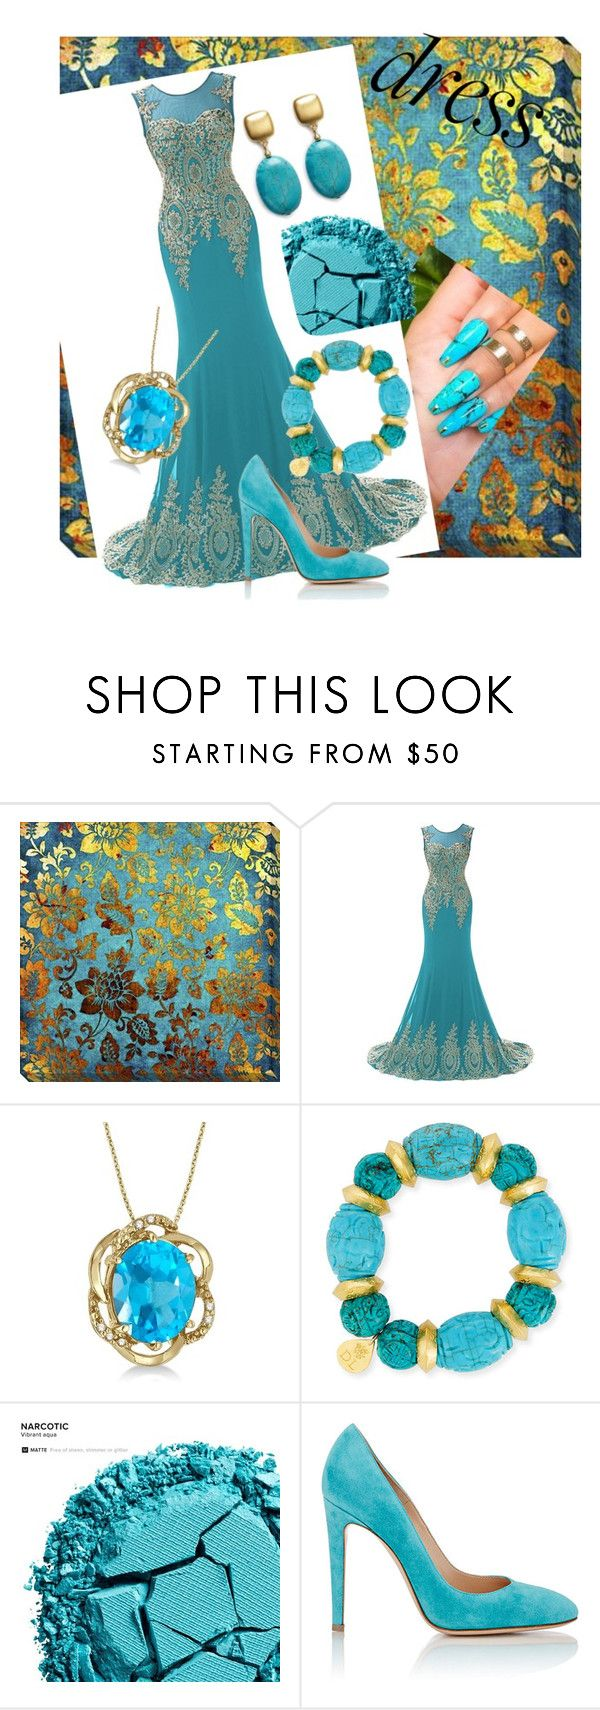 """Blue and gold galore"" by ashleyhuang68 ❤ liked on Polyvore featuring Allurez, Devon Leigh, Urban Decay, Gianvito Rossi and Kenneth Jay Lane"